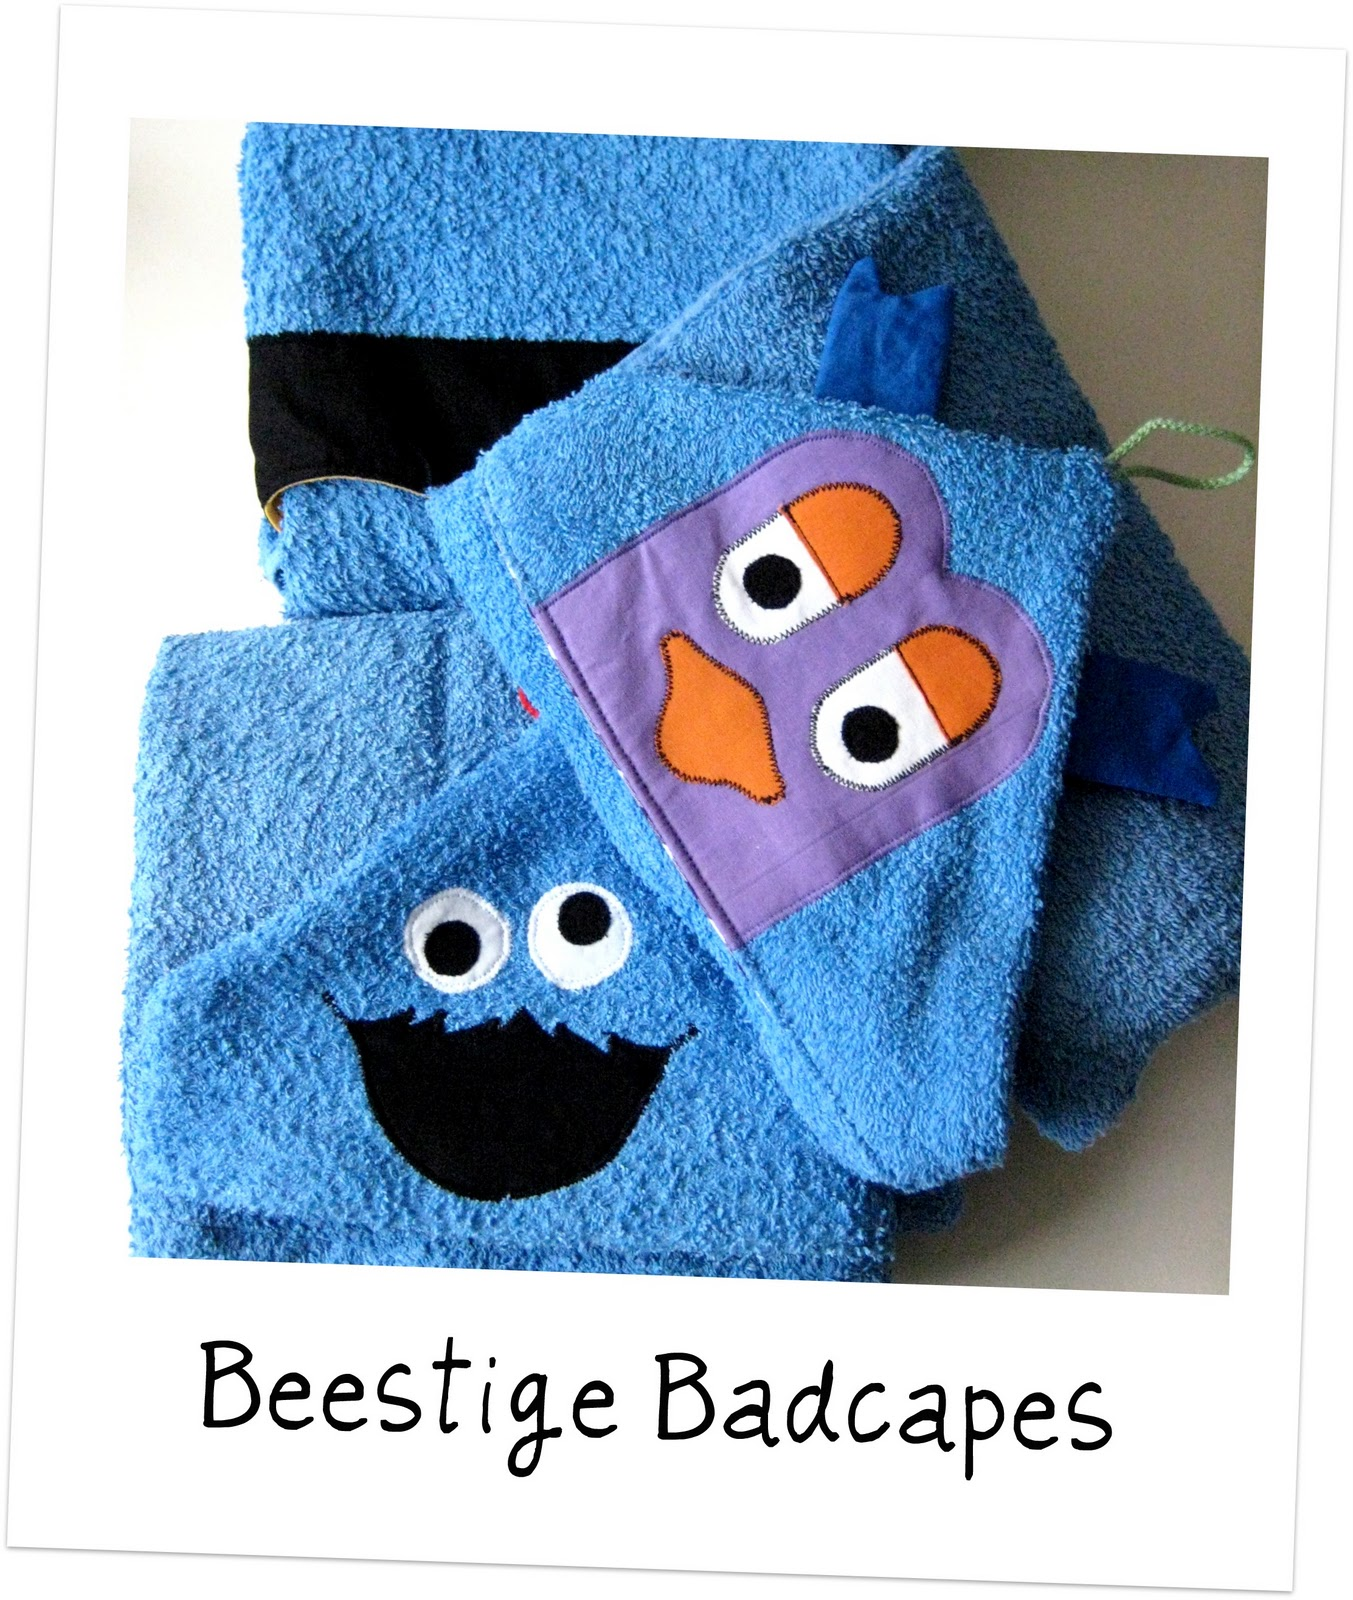 Badecape Kinder Sew Natural Blog Zelf Maken Beestige Badcapes